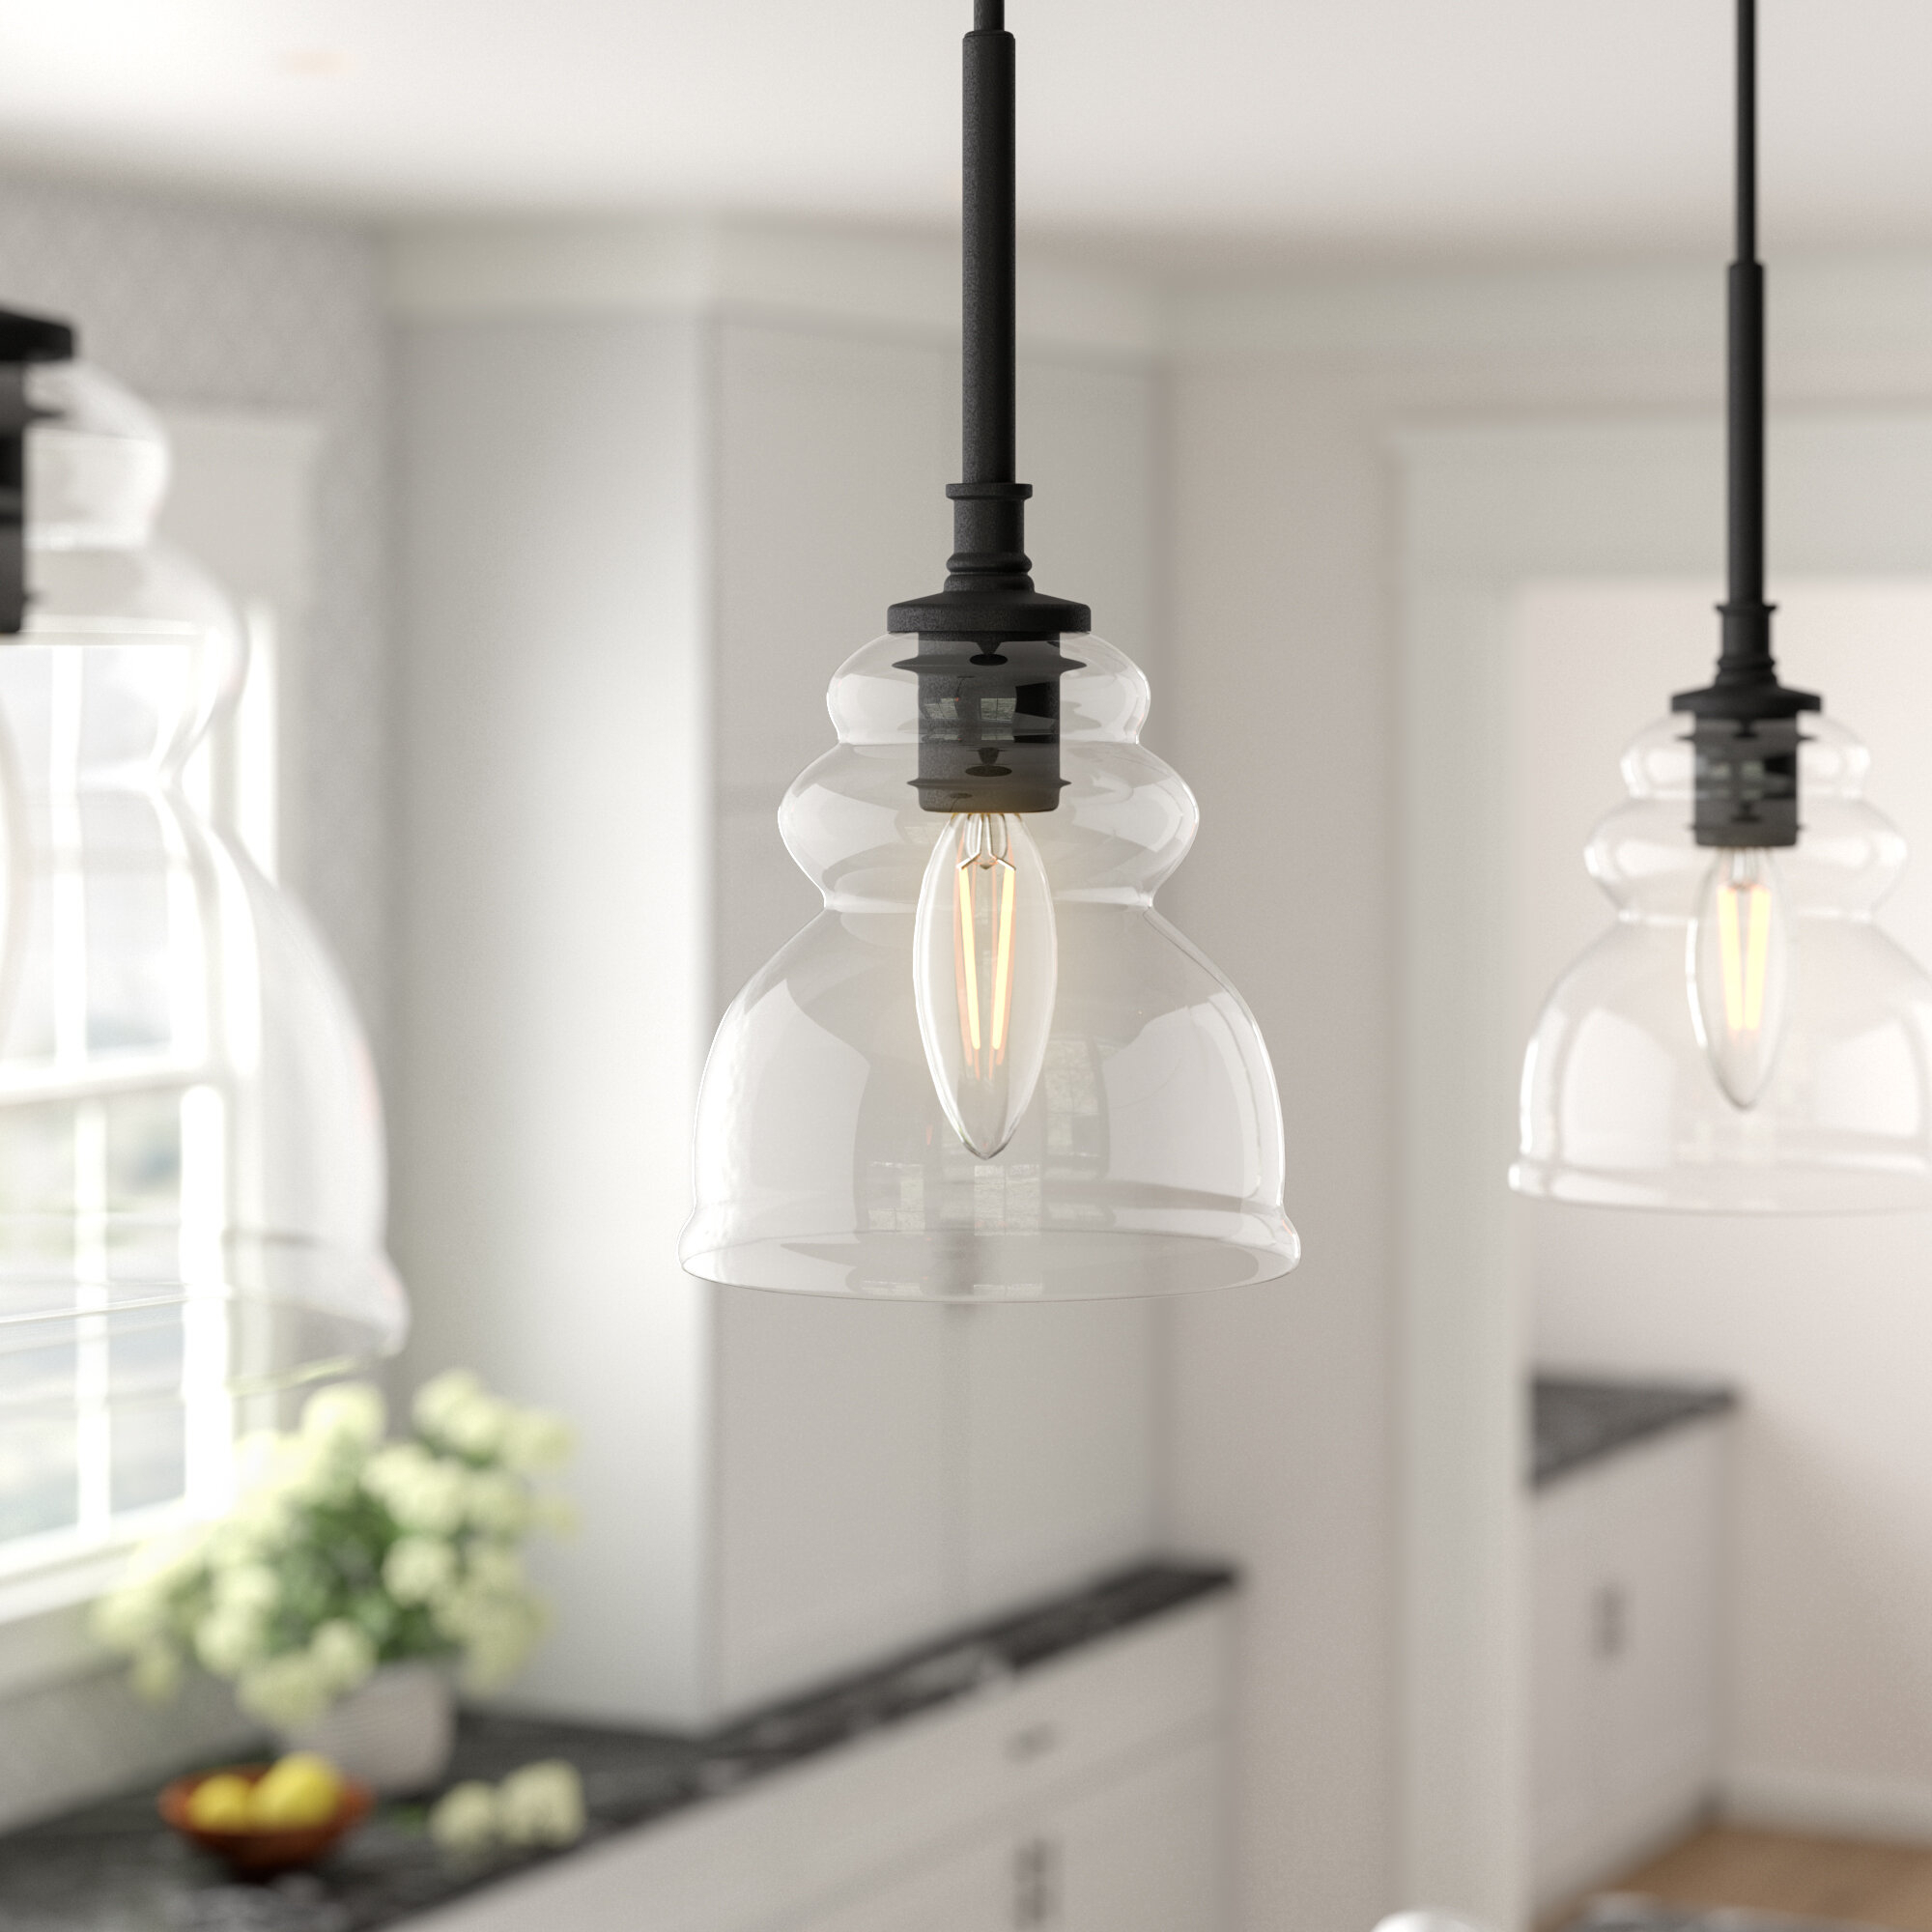 Arla 1 Light Single Bell Pendant Throughout Sargent 1 Light Single Bell Pendants (View 6 of 30)